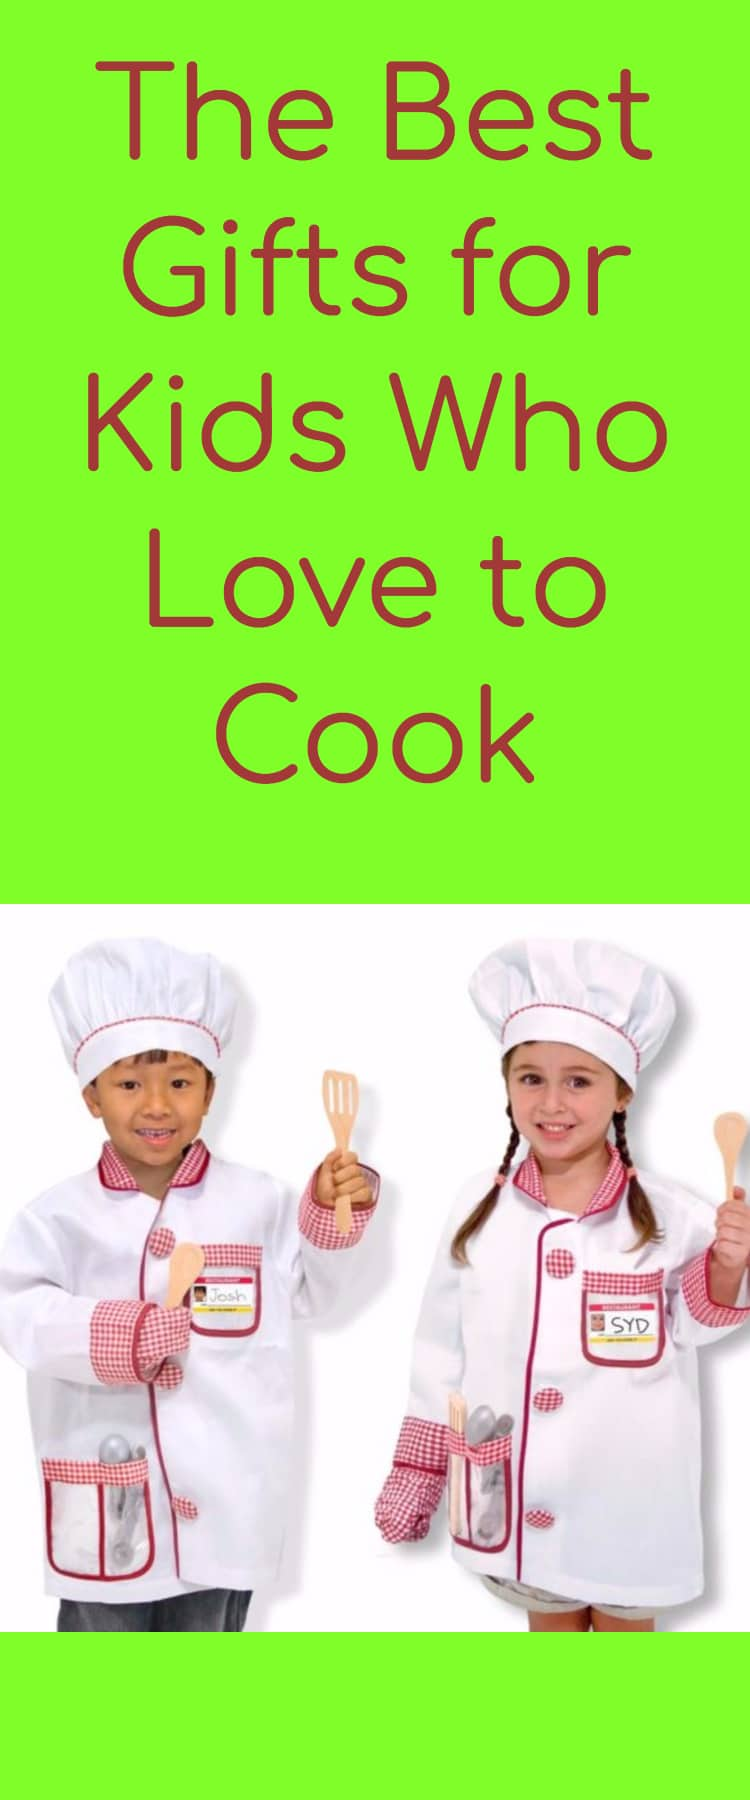 Cooking Gifts for Kids